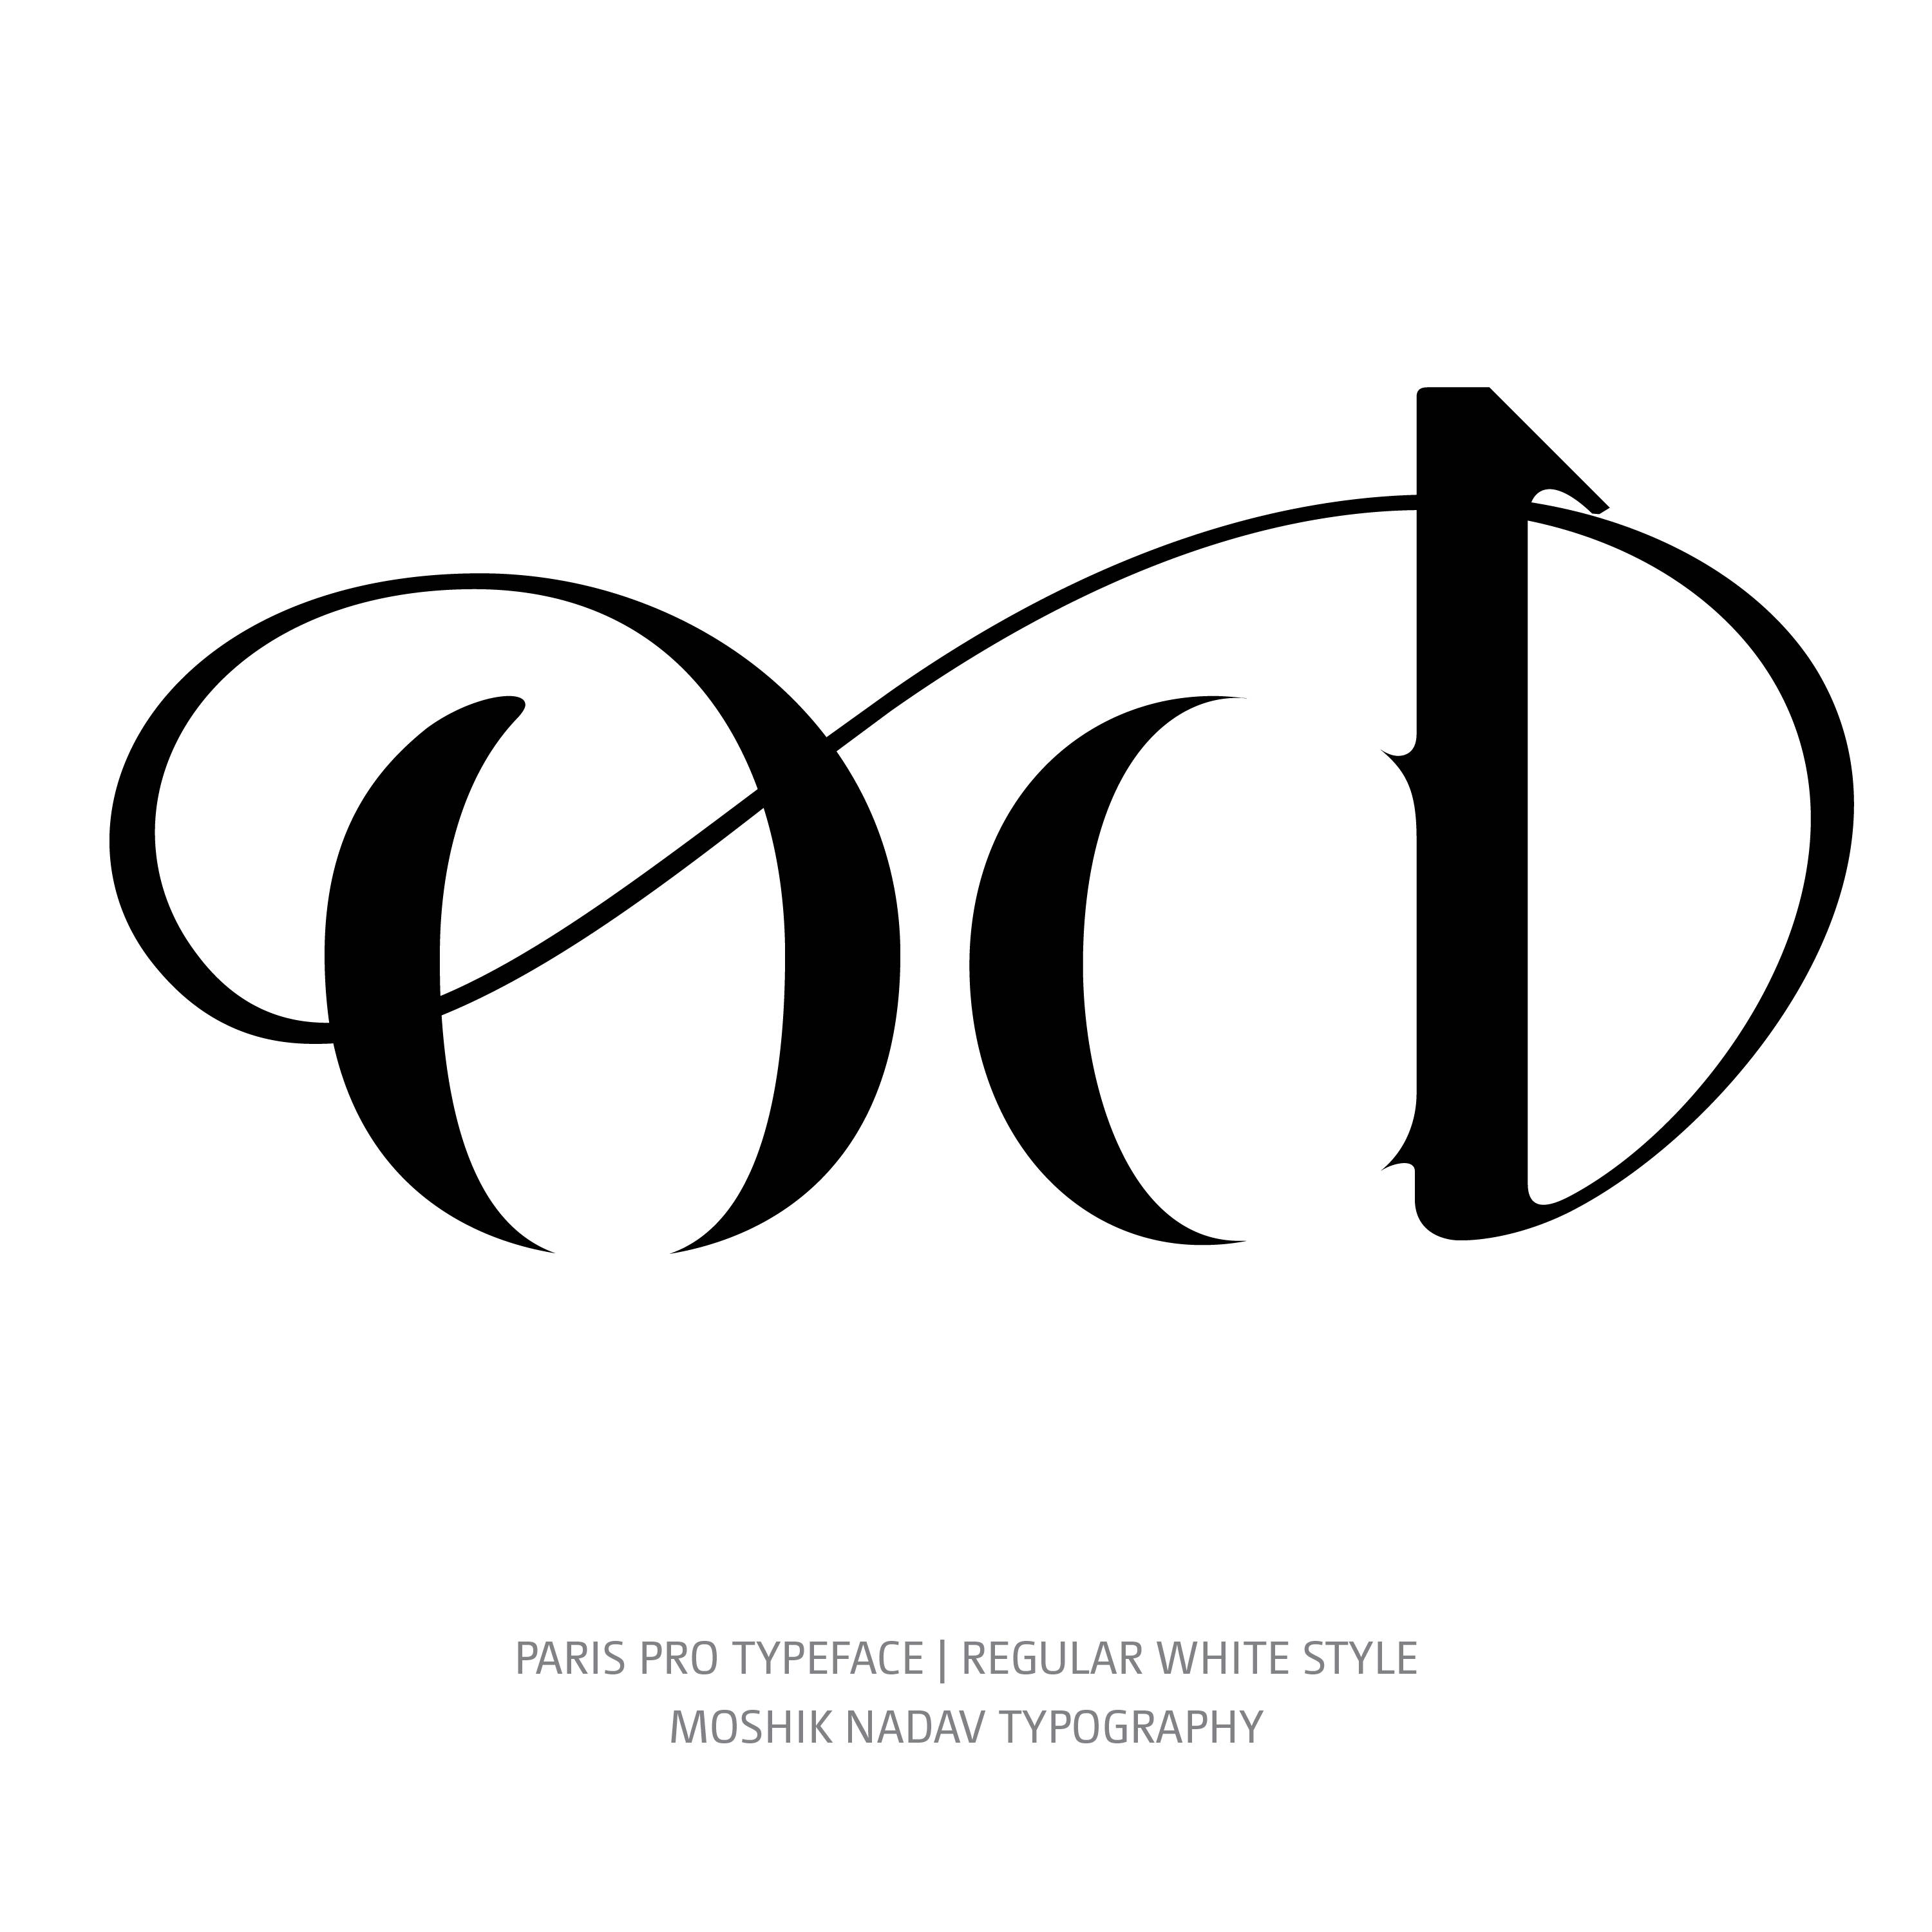 Paris Pro Typeface Regular White od ligature